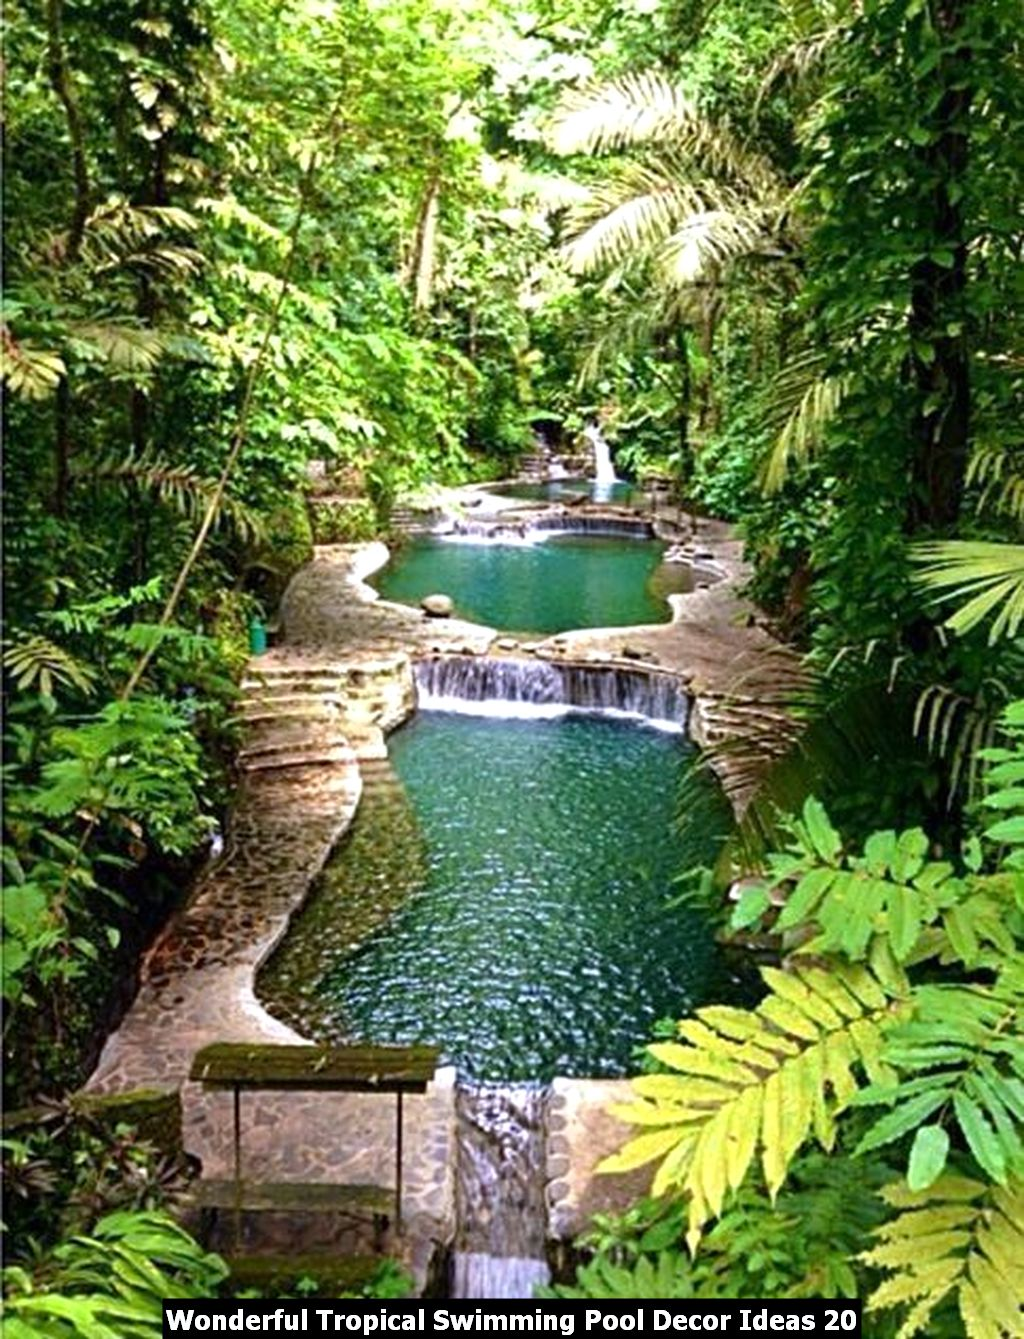 Wonderful Tropical Swimming Pool Decor Ideas 20